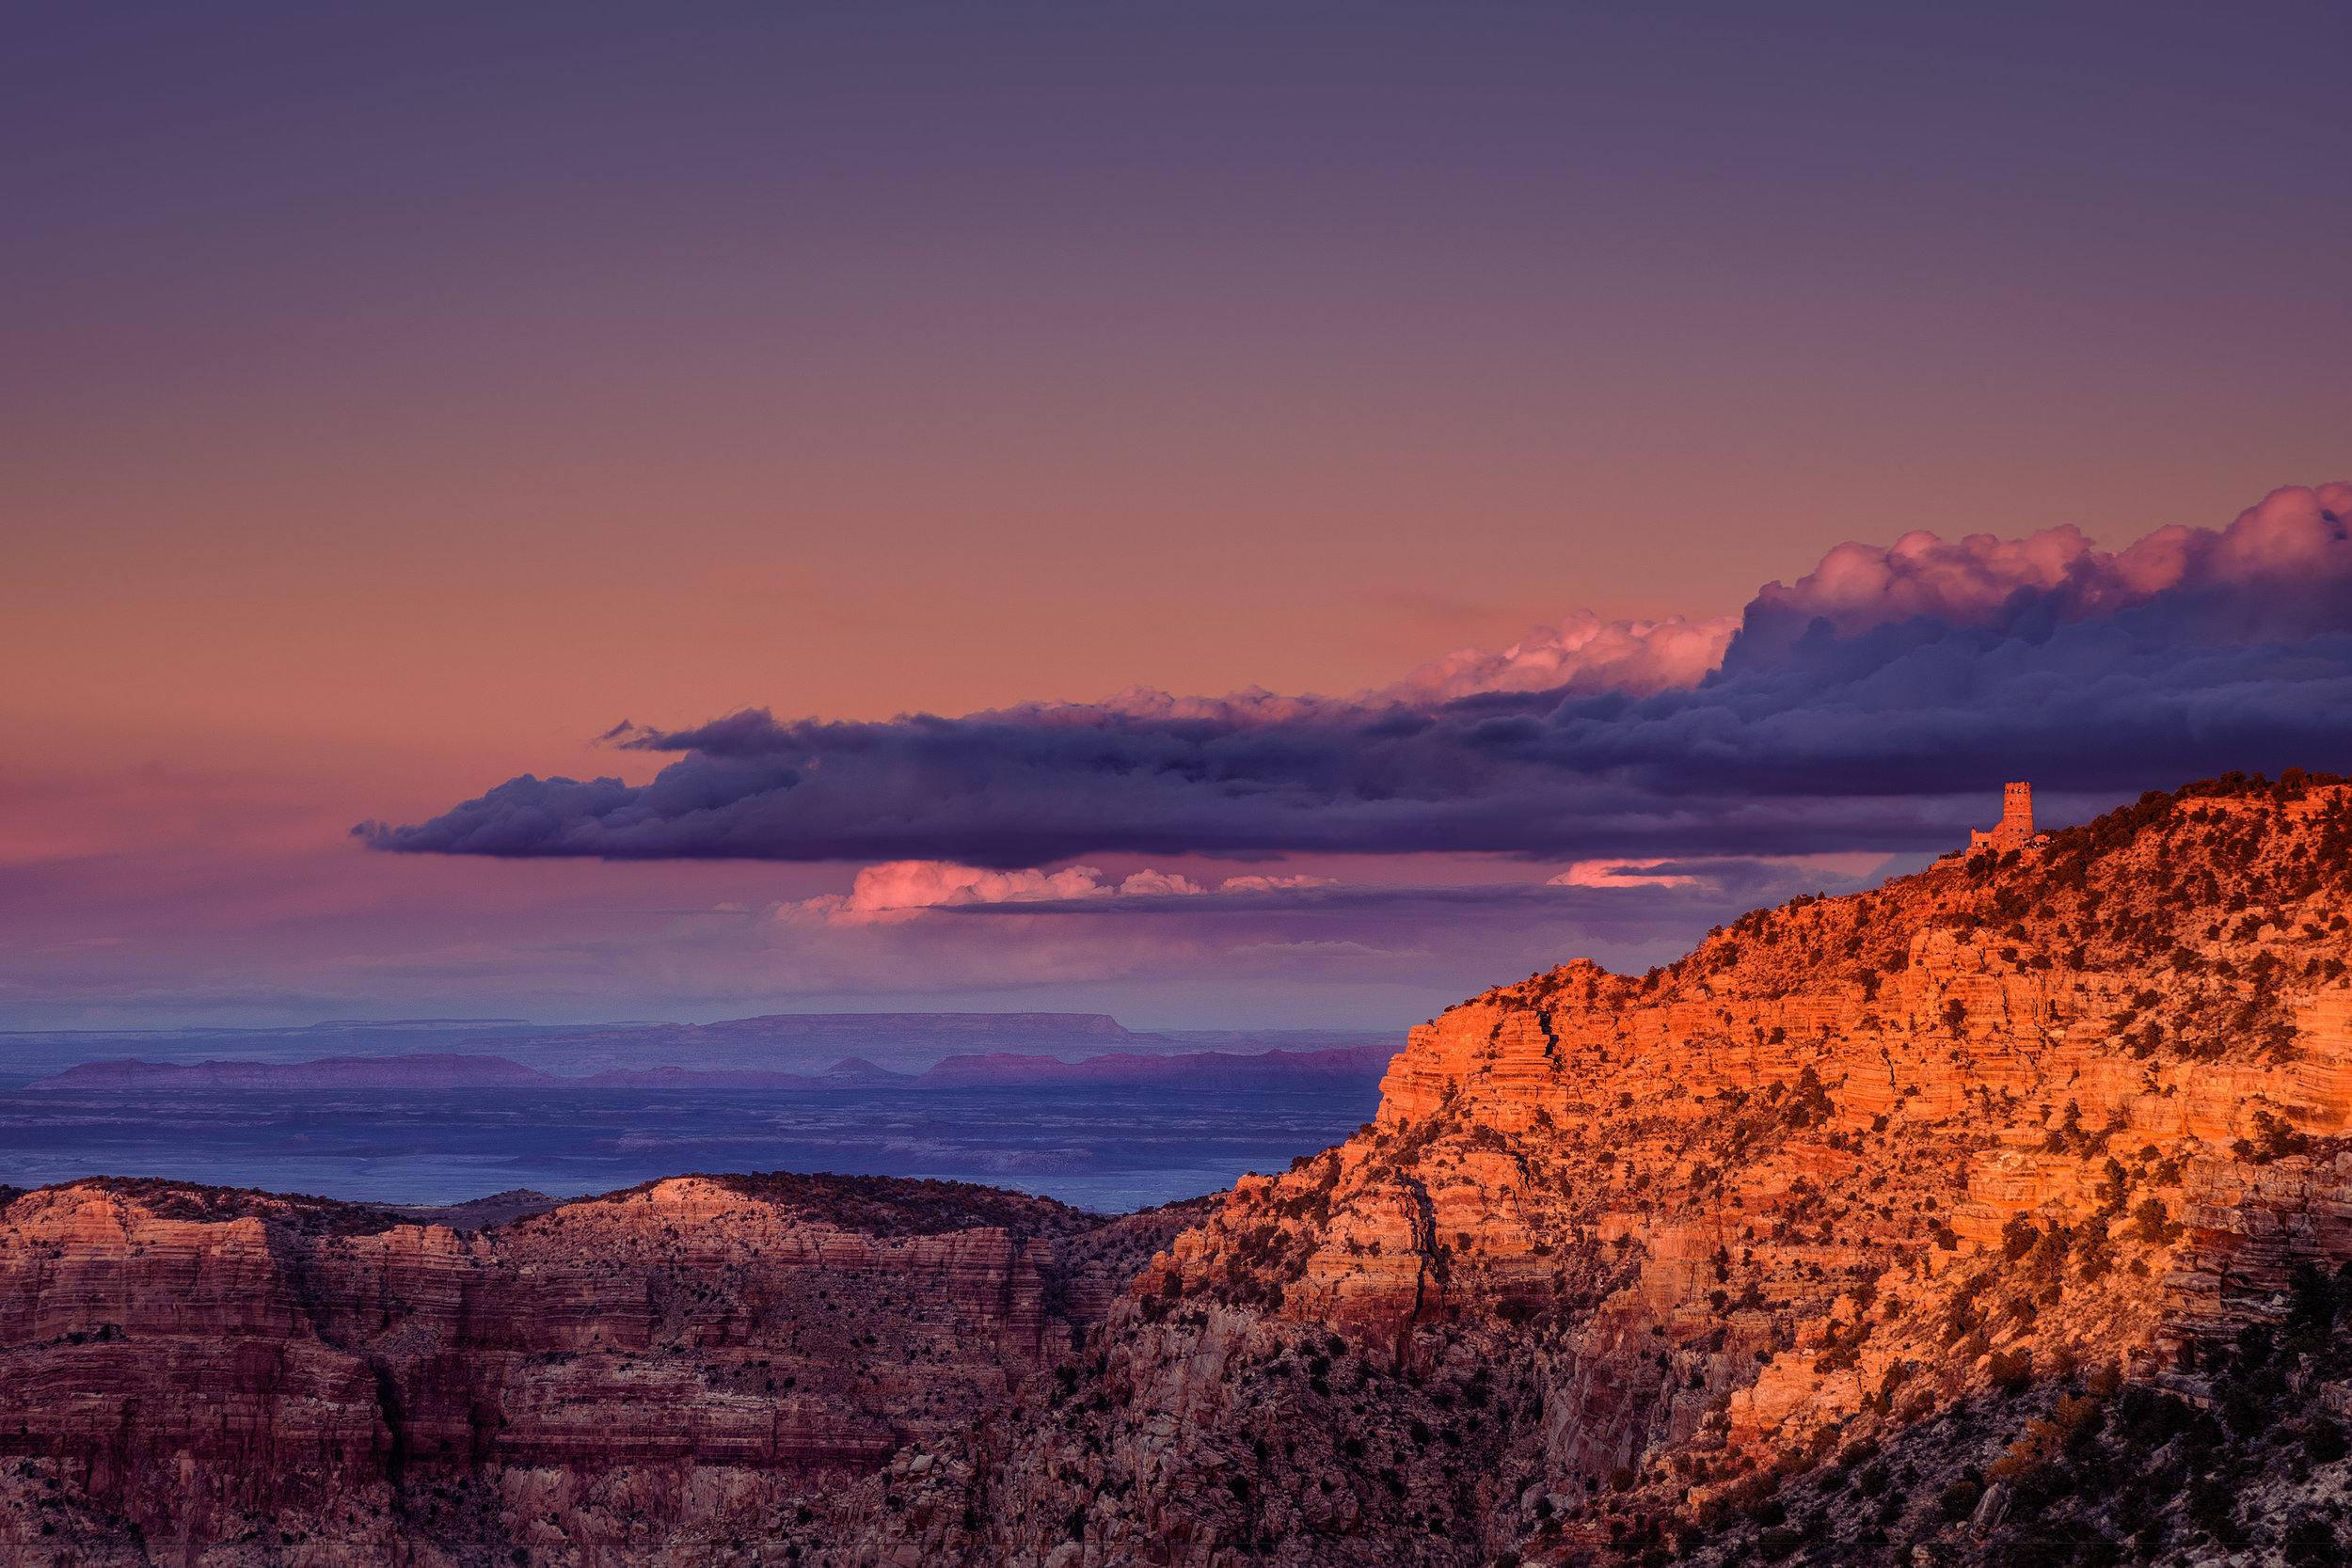 The watchtower at Grand Canyon National Park